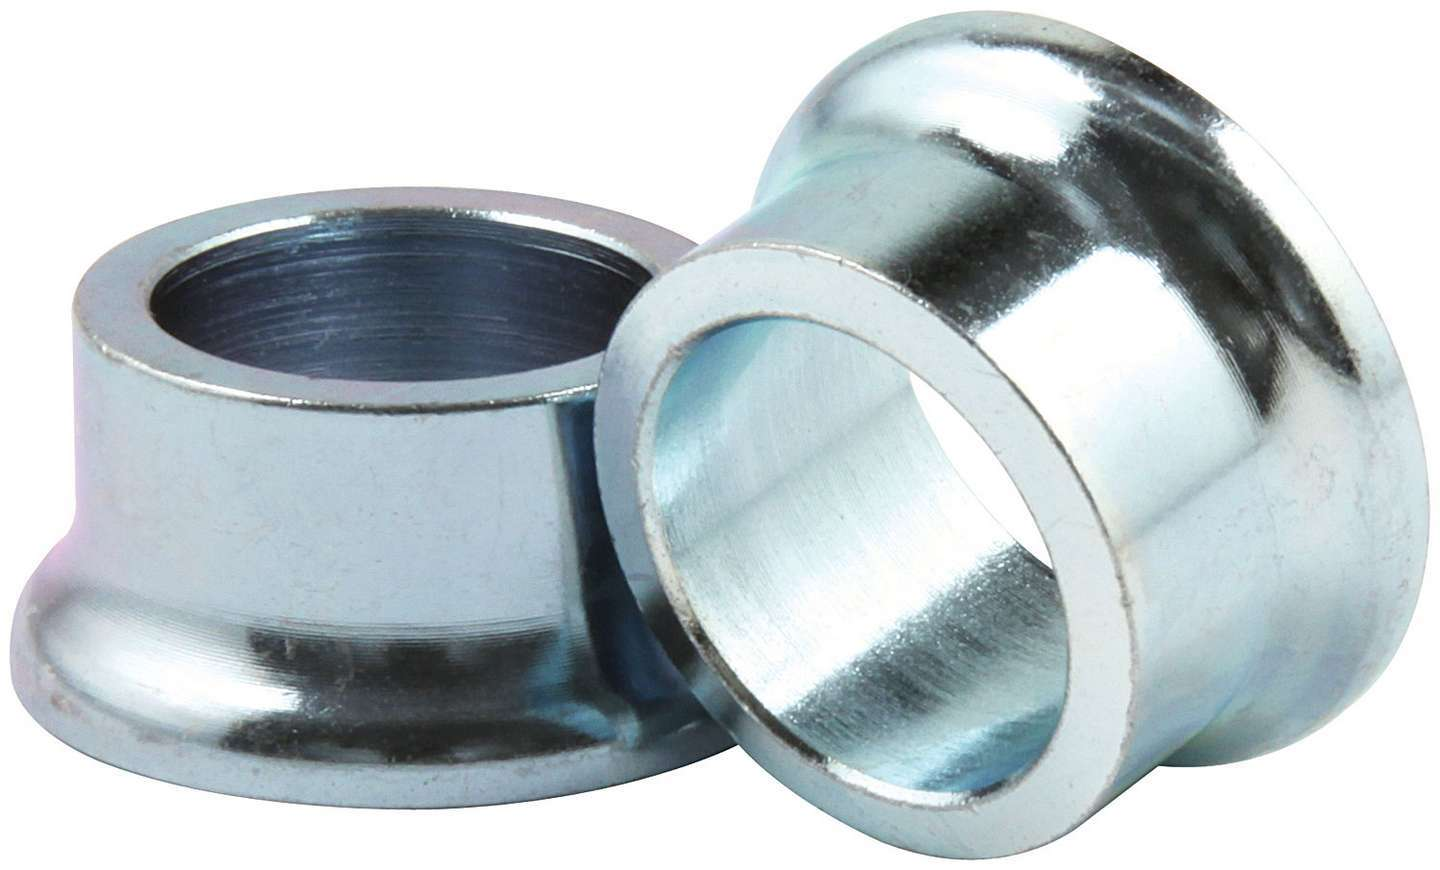 Allstar Performance 18582 Tapered Spacer, 5/8 in ID, 1/2 in Thick, Steel, Zinc Oxide, Universal, Pair